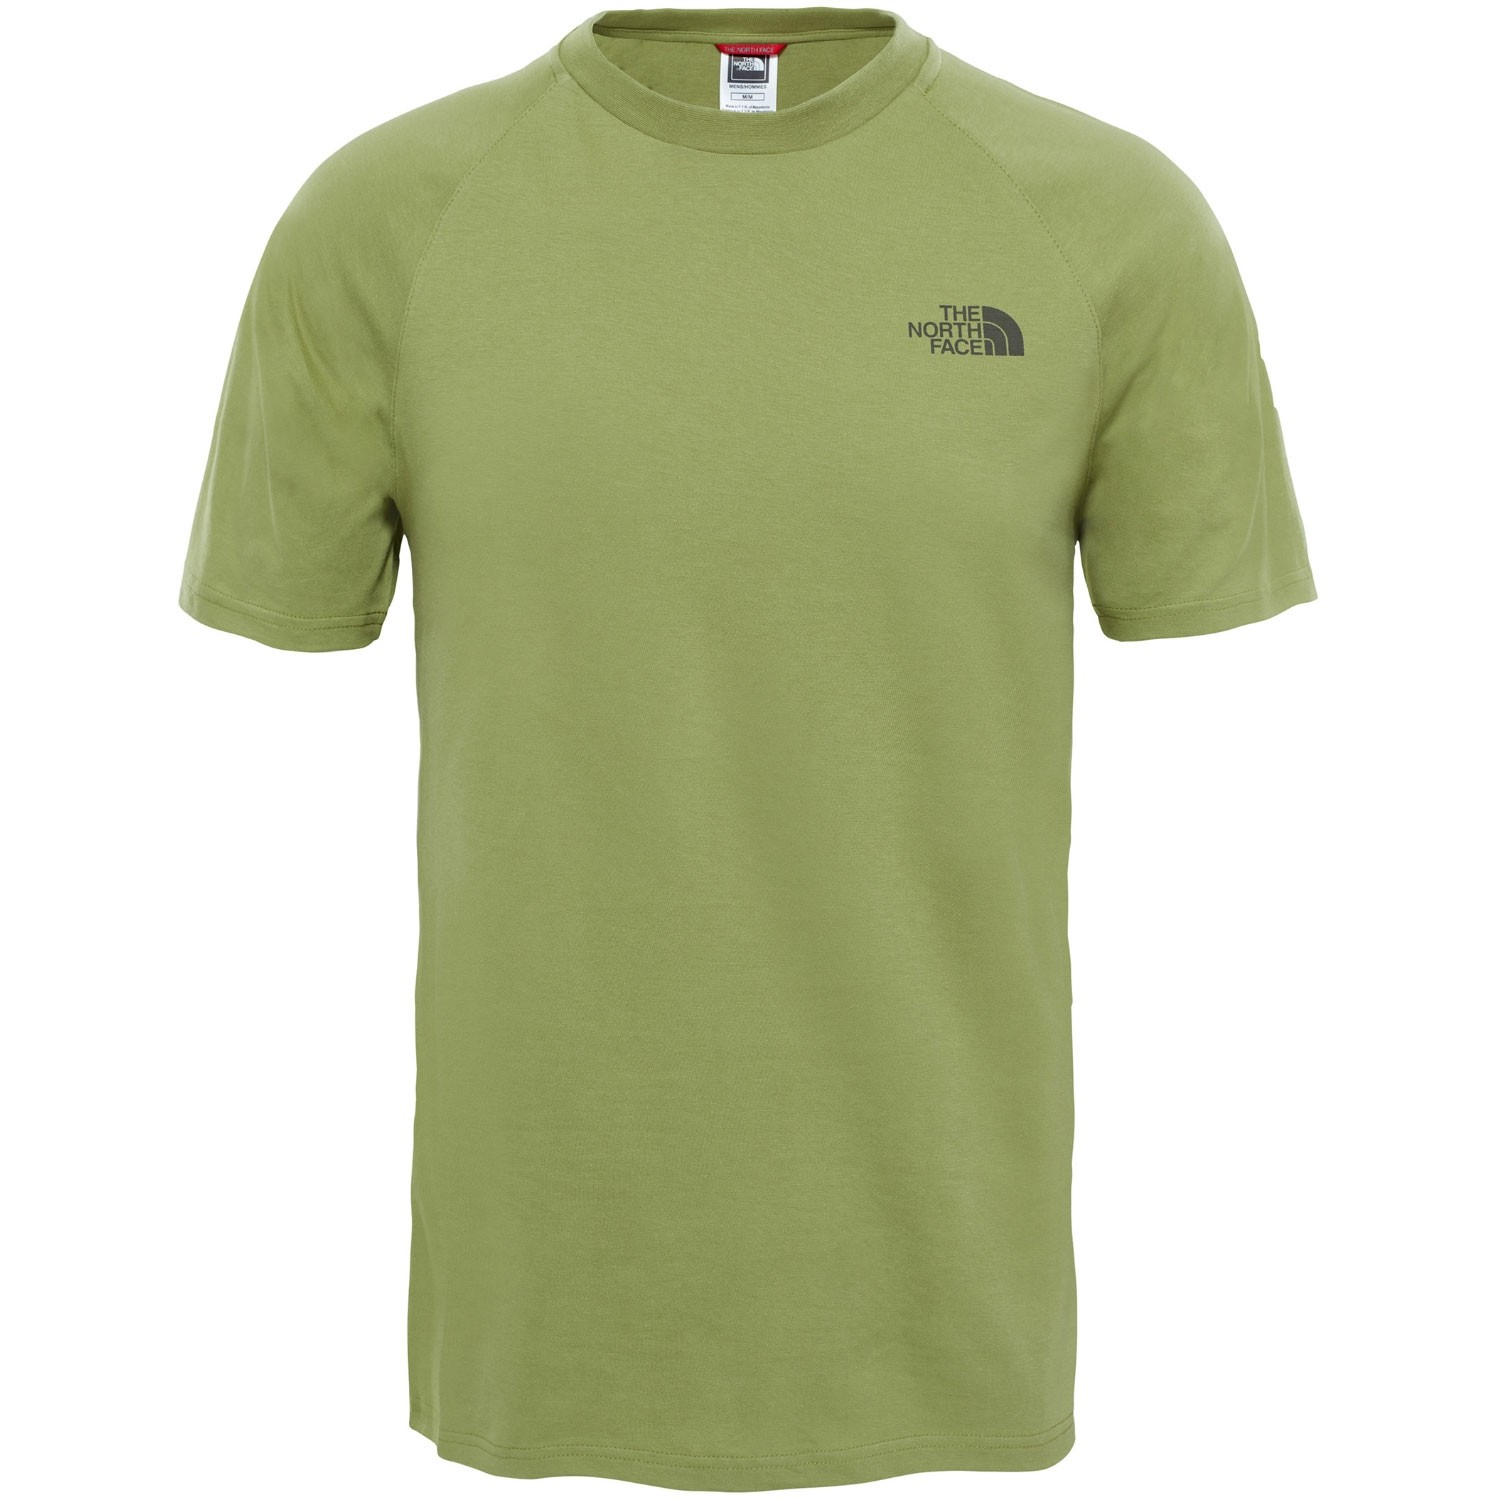 The North Face North Faces Tee - Iguana Green